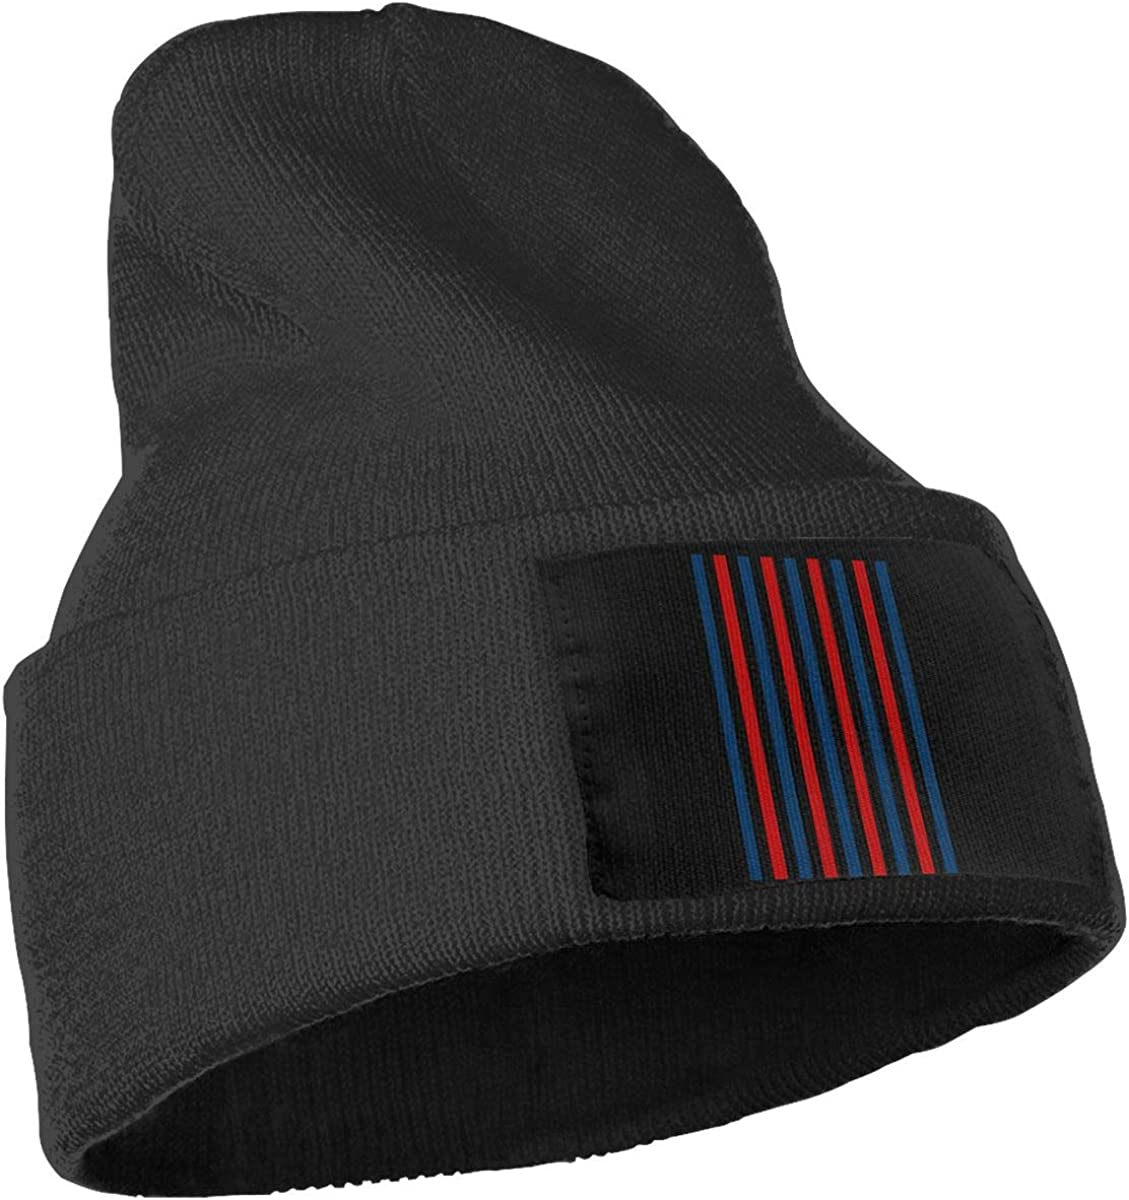 Stripes American Flag Original Ski Cap Mens and Womens 100/% Acrylic Knitted Hat Cap